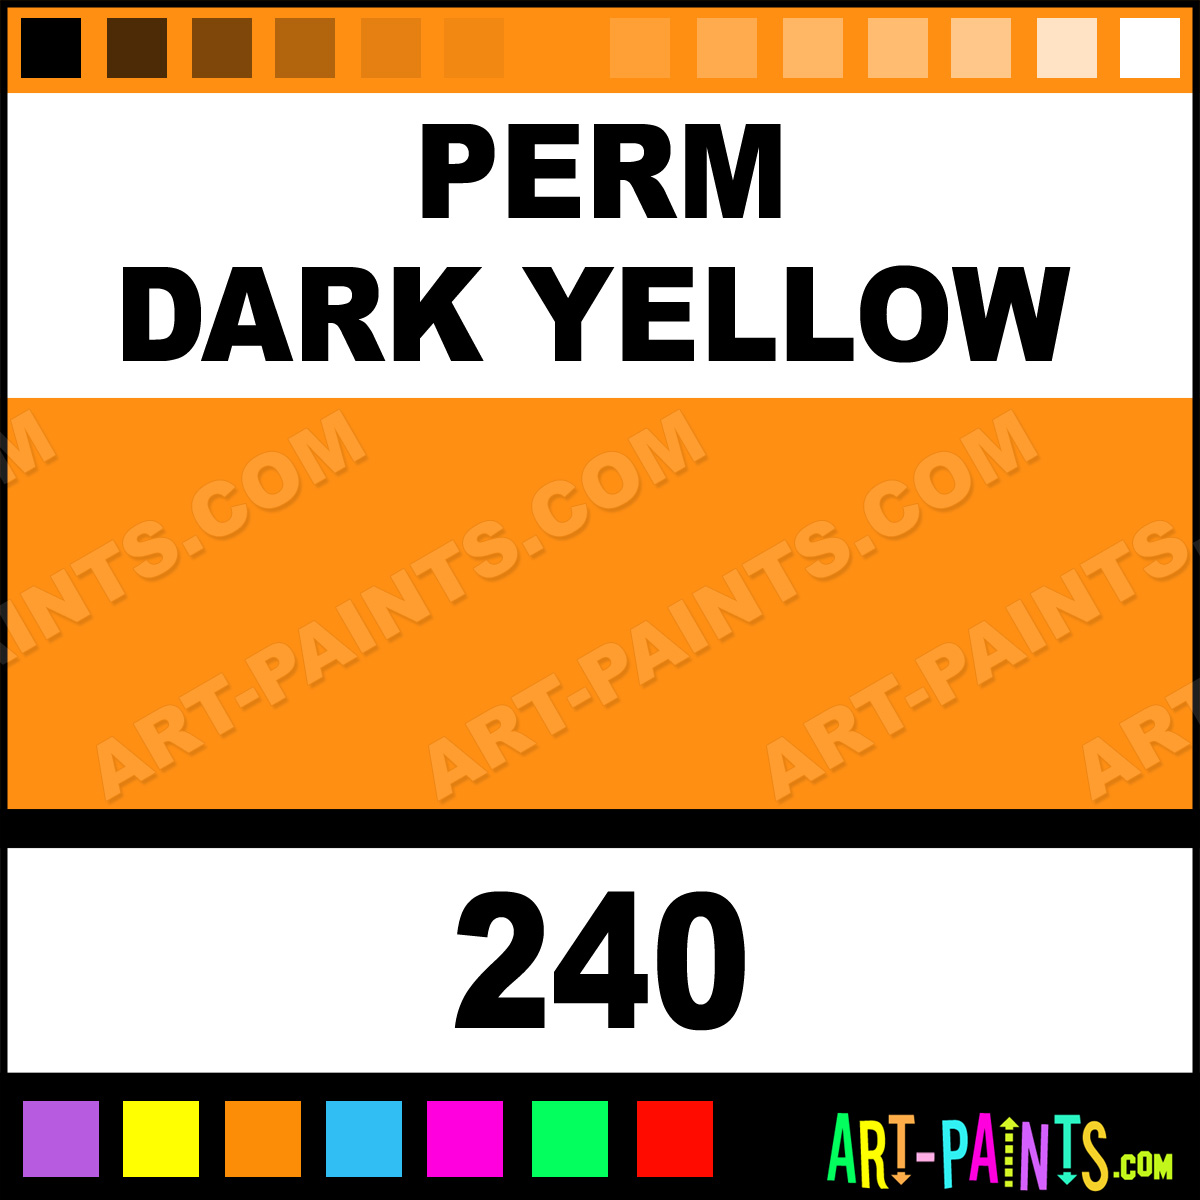 Perm Dark Yellow Fragonard Watercolor Paints 240 Perm